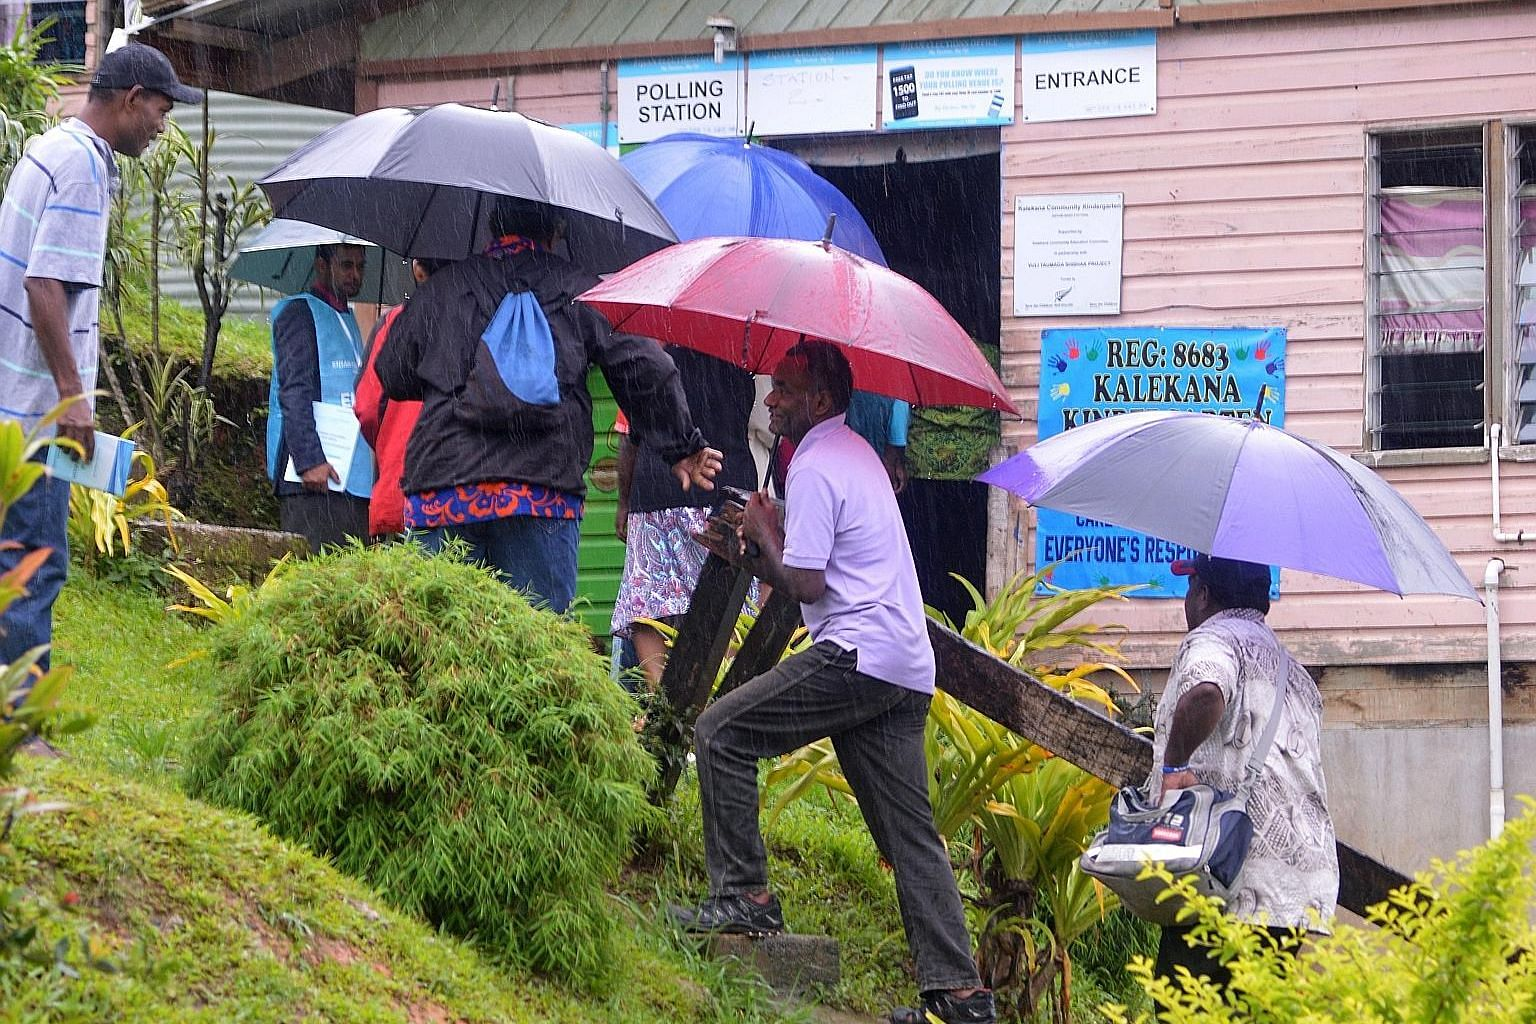 A queue to vote in the general election in Suva yesterday, although heavy rain dampened the turnout in the Fijian nation.